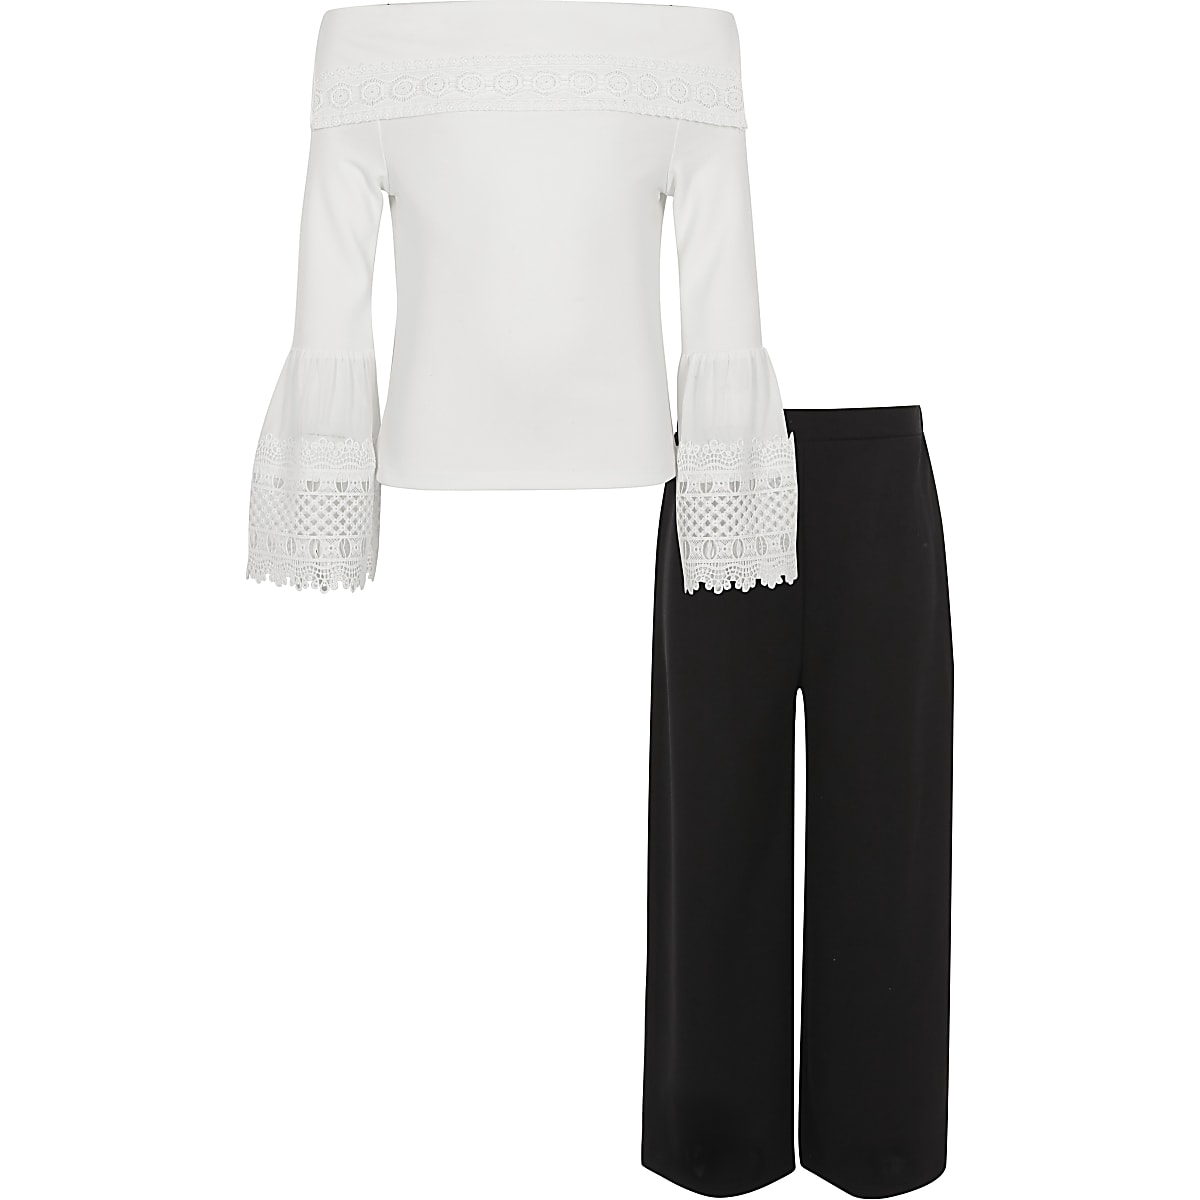 Girls white lace top and trousers outfit